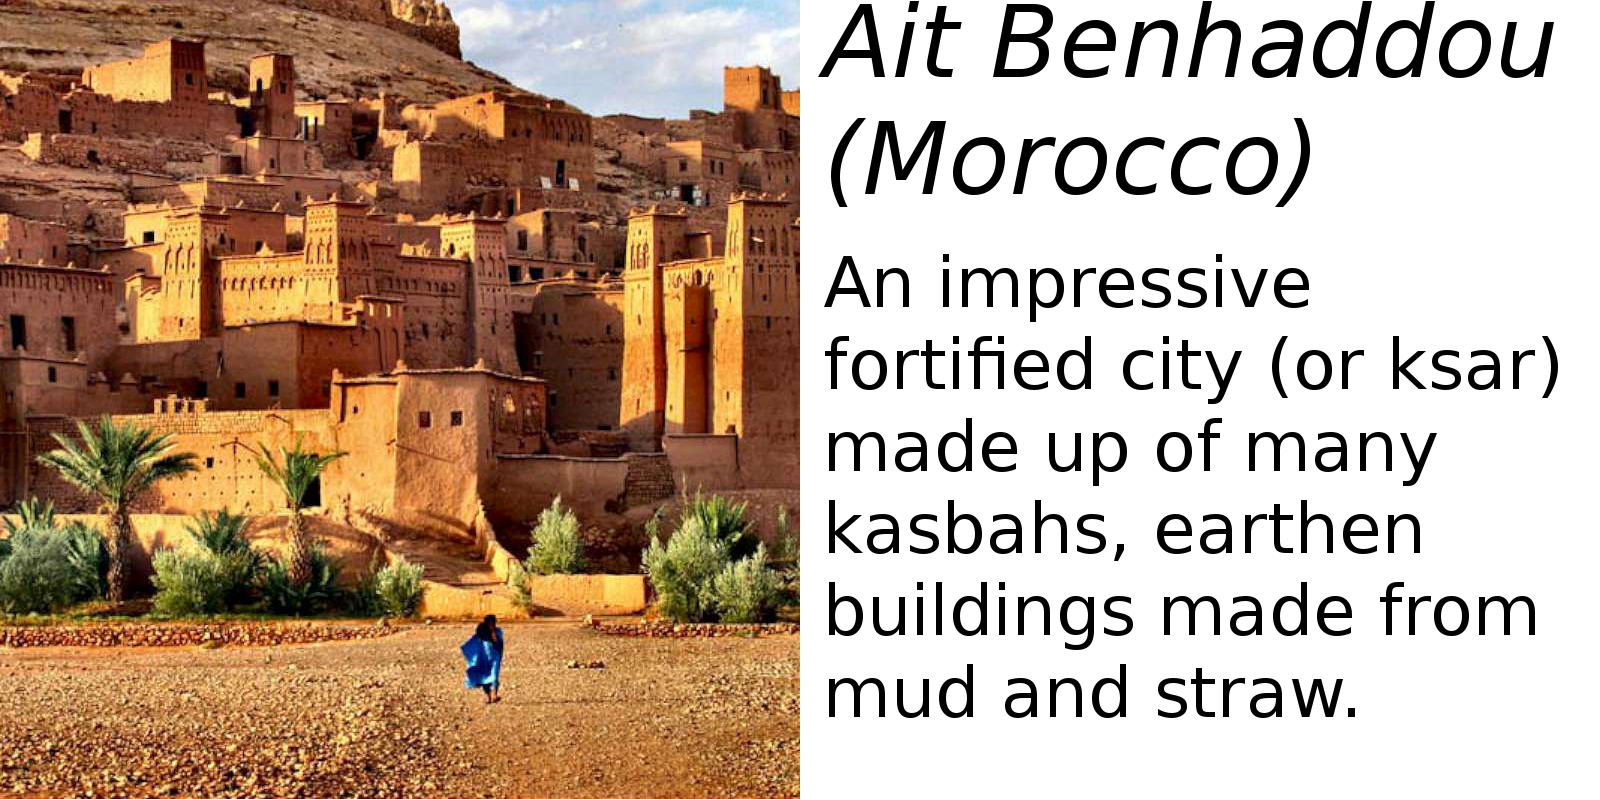 Ait Benhaddou, Morocco (description) #2